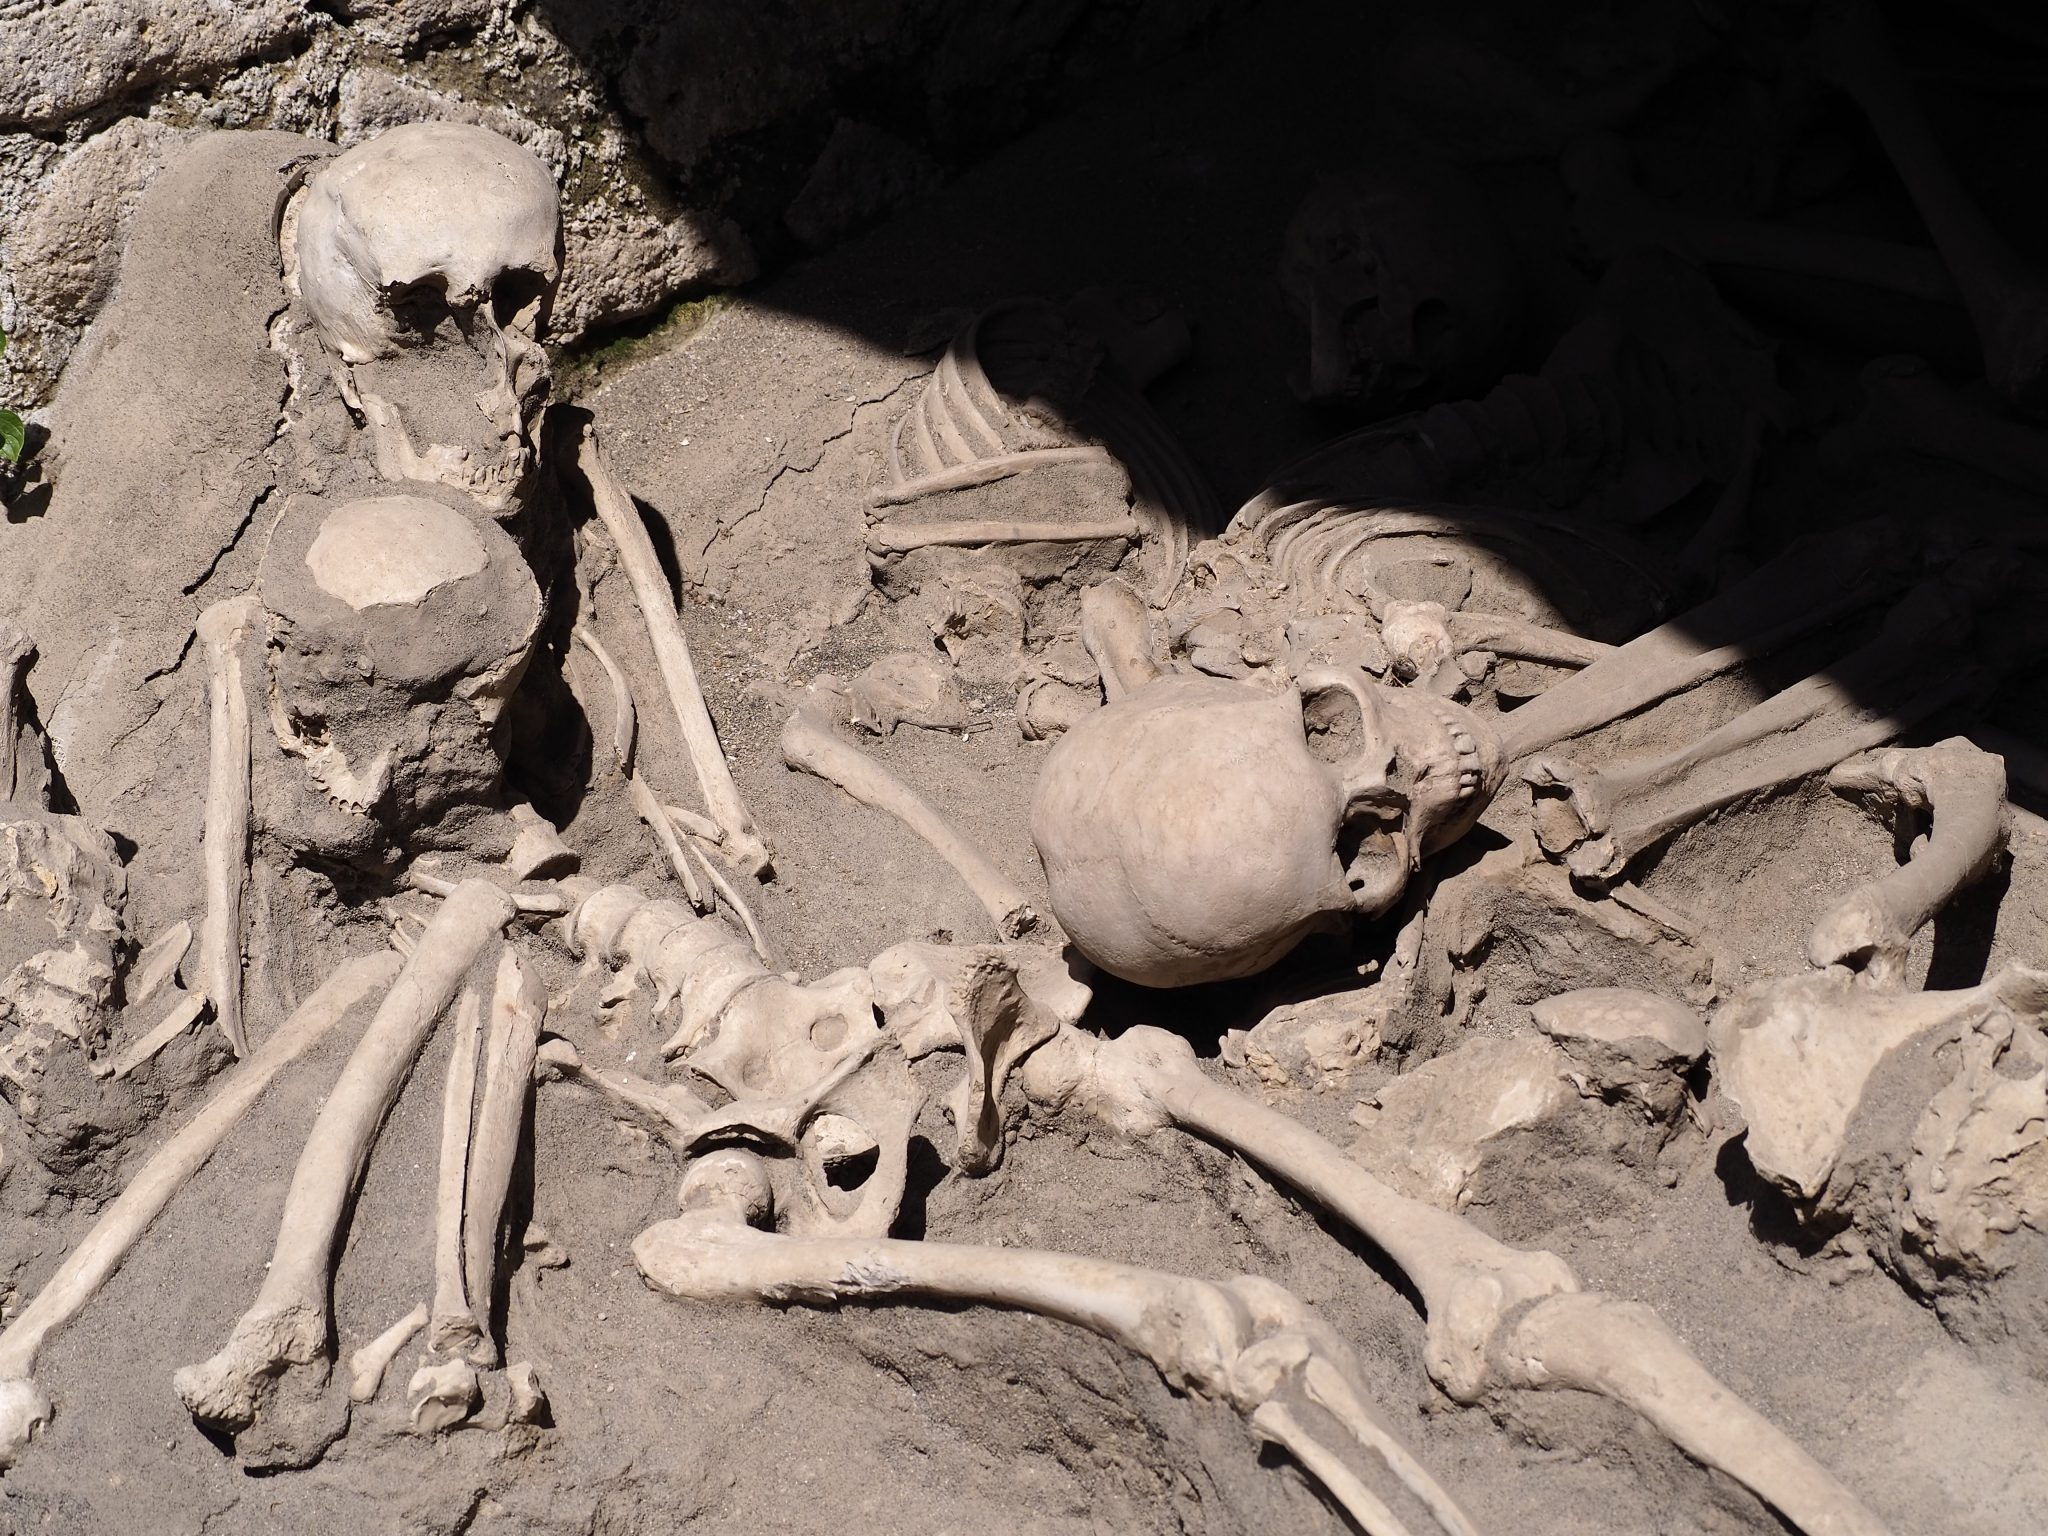 Adult & Child Skeletons